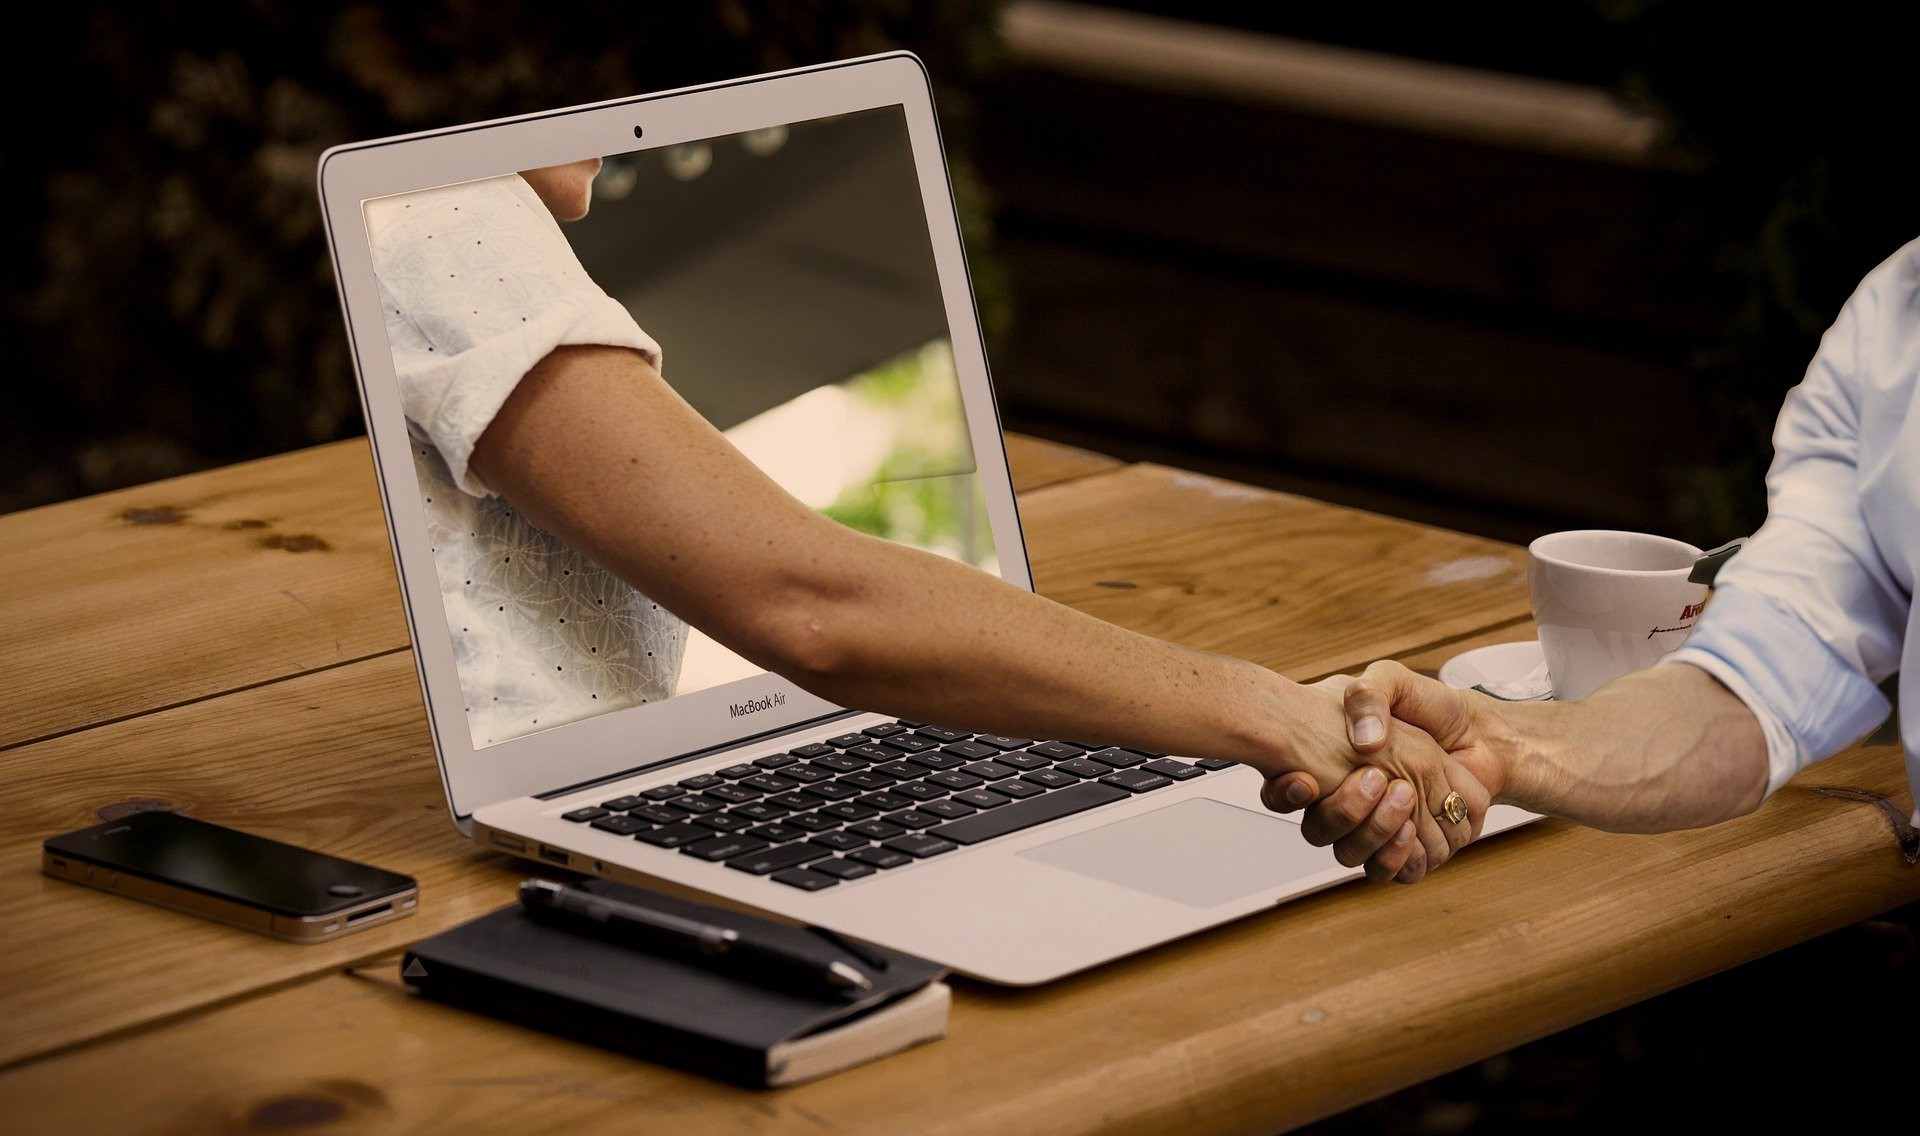 Hiring web developers is not always a good idea. Photo: a hand extending out of a laptop screen.